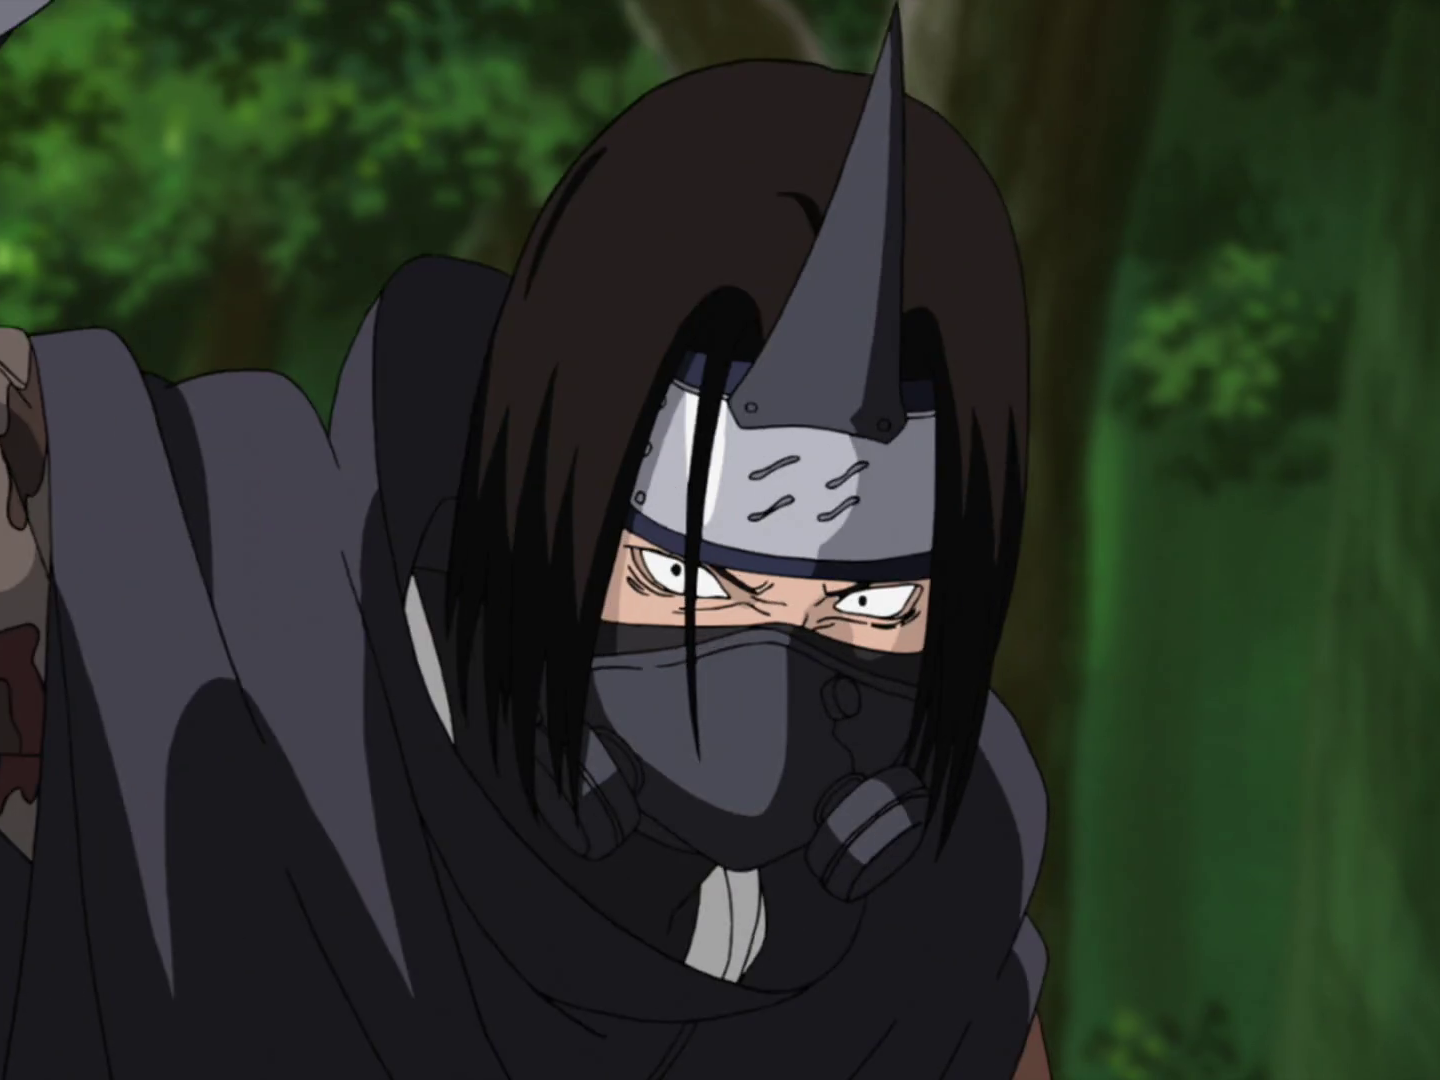 Forehead protector narutopedia fandom powered by wikia gozu profile pic biocorpaavc Image collections